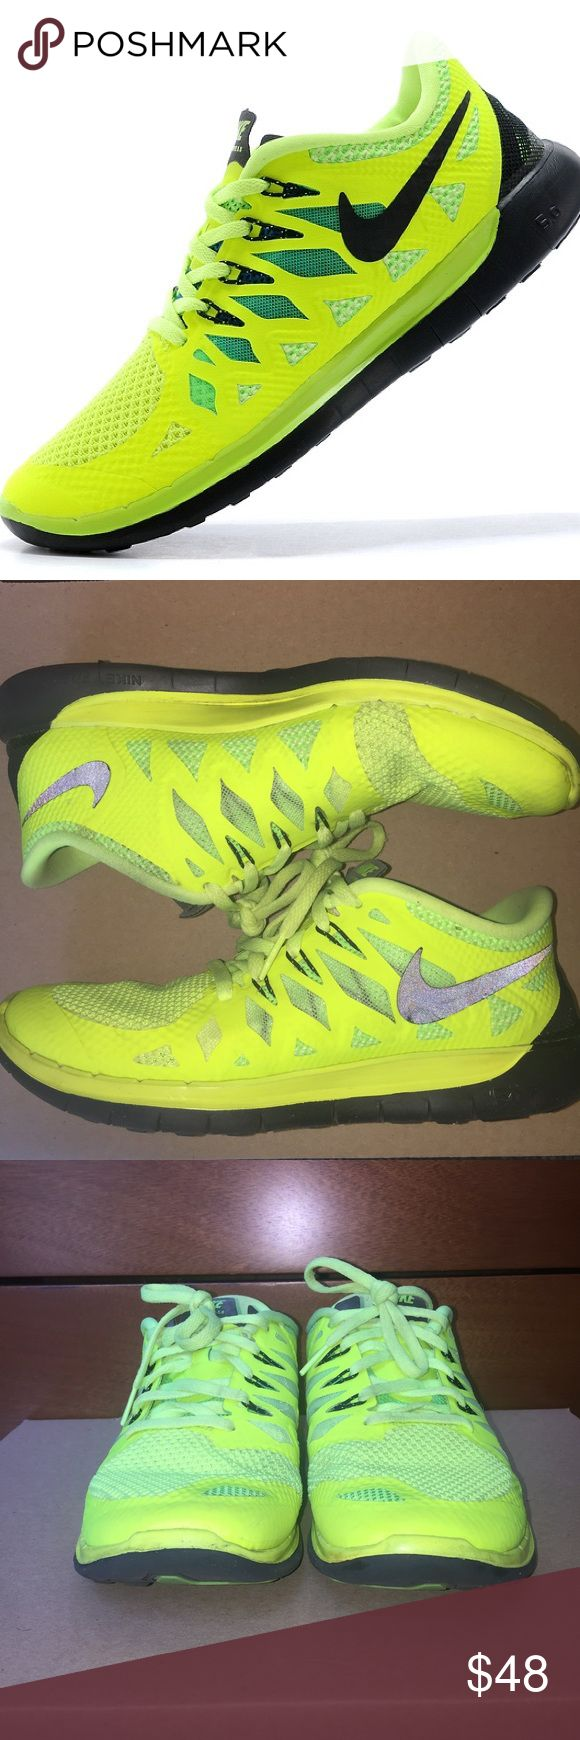 NIKE | Neon Yellow Free Run 5.0 Sneakers 6.5Y/8W 💜Neon yellow/green & black (look brighter in person)       💜Nike check mark is reflective so appears light due to the camera flash but is actually black as shown in first pic                               💜Youth size 6.5, equivalent to Women's size 8                    💜Worn a bit & some signs of wear but still in good used condition overall (7/10) & have a lot of wear left in them                                   🚫TRADES🚫Questions?…